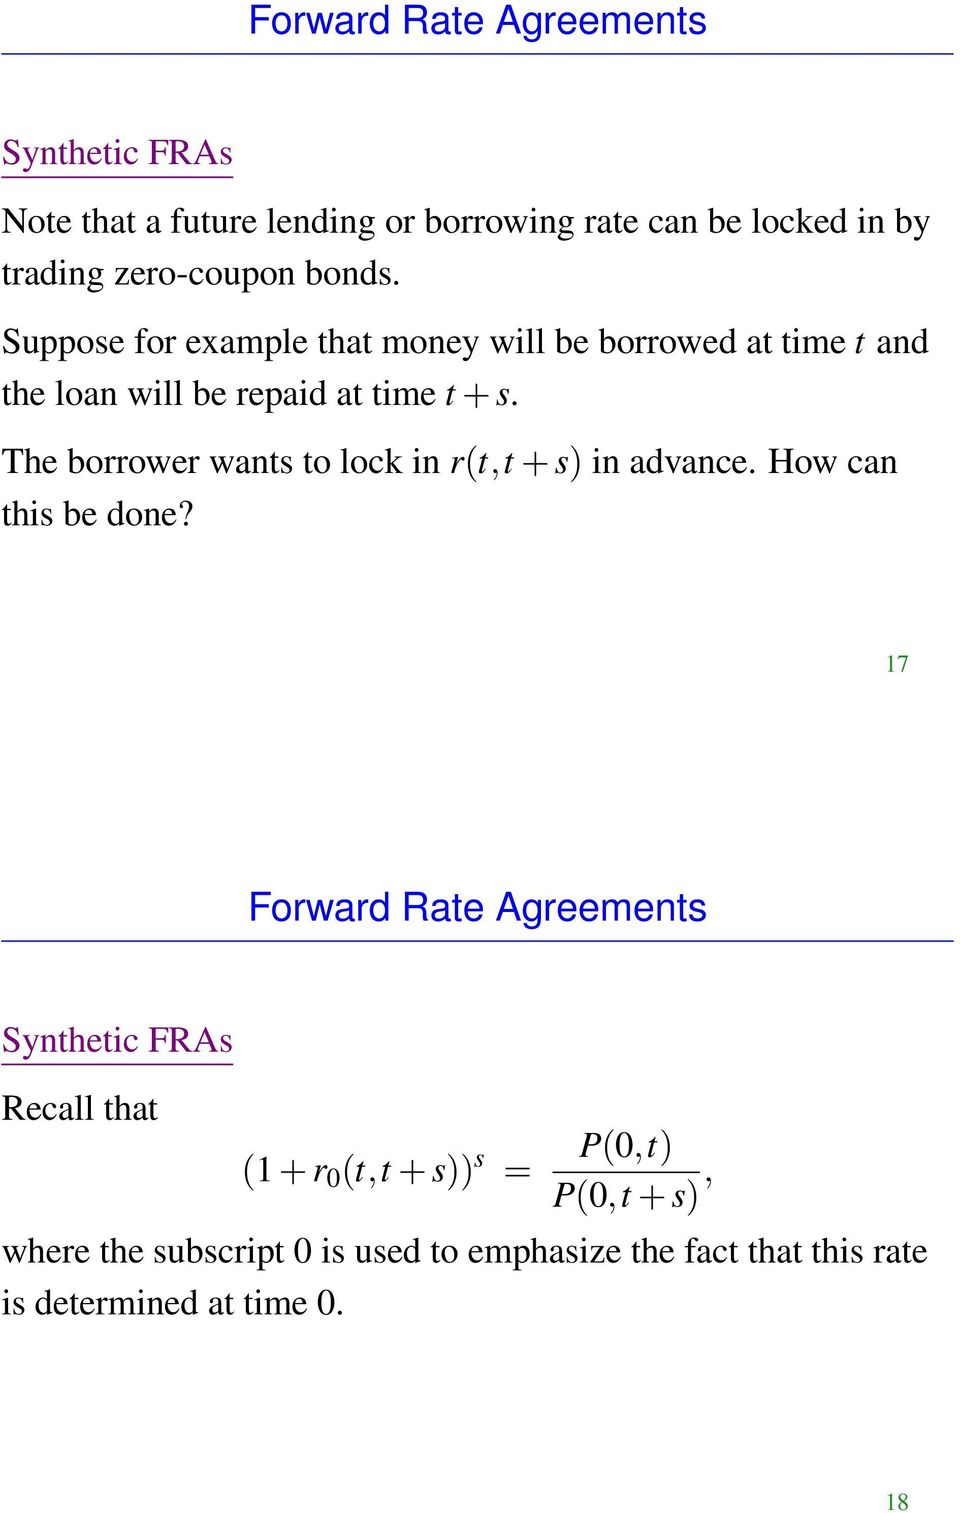 The borrower wants to lock in r(t,t + s) in advance. How can this be done?